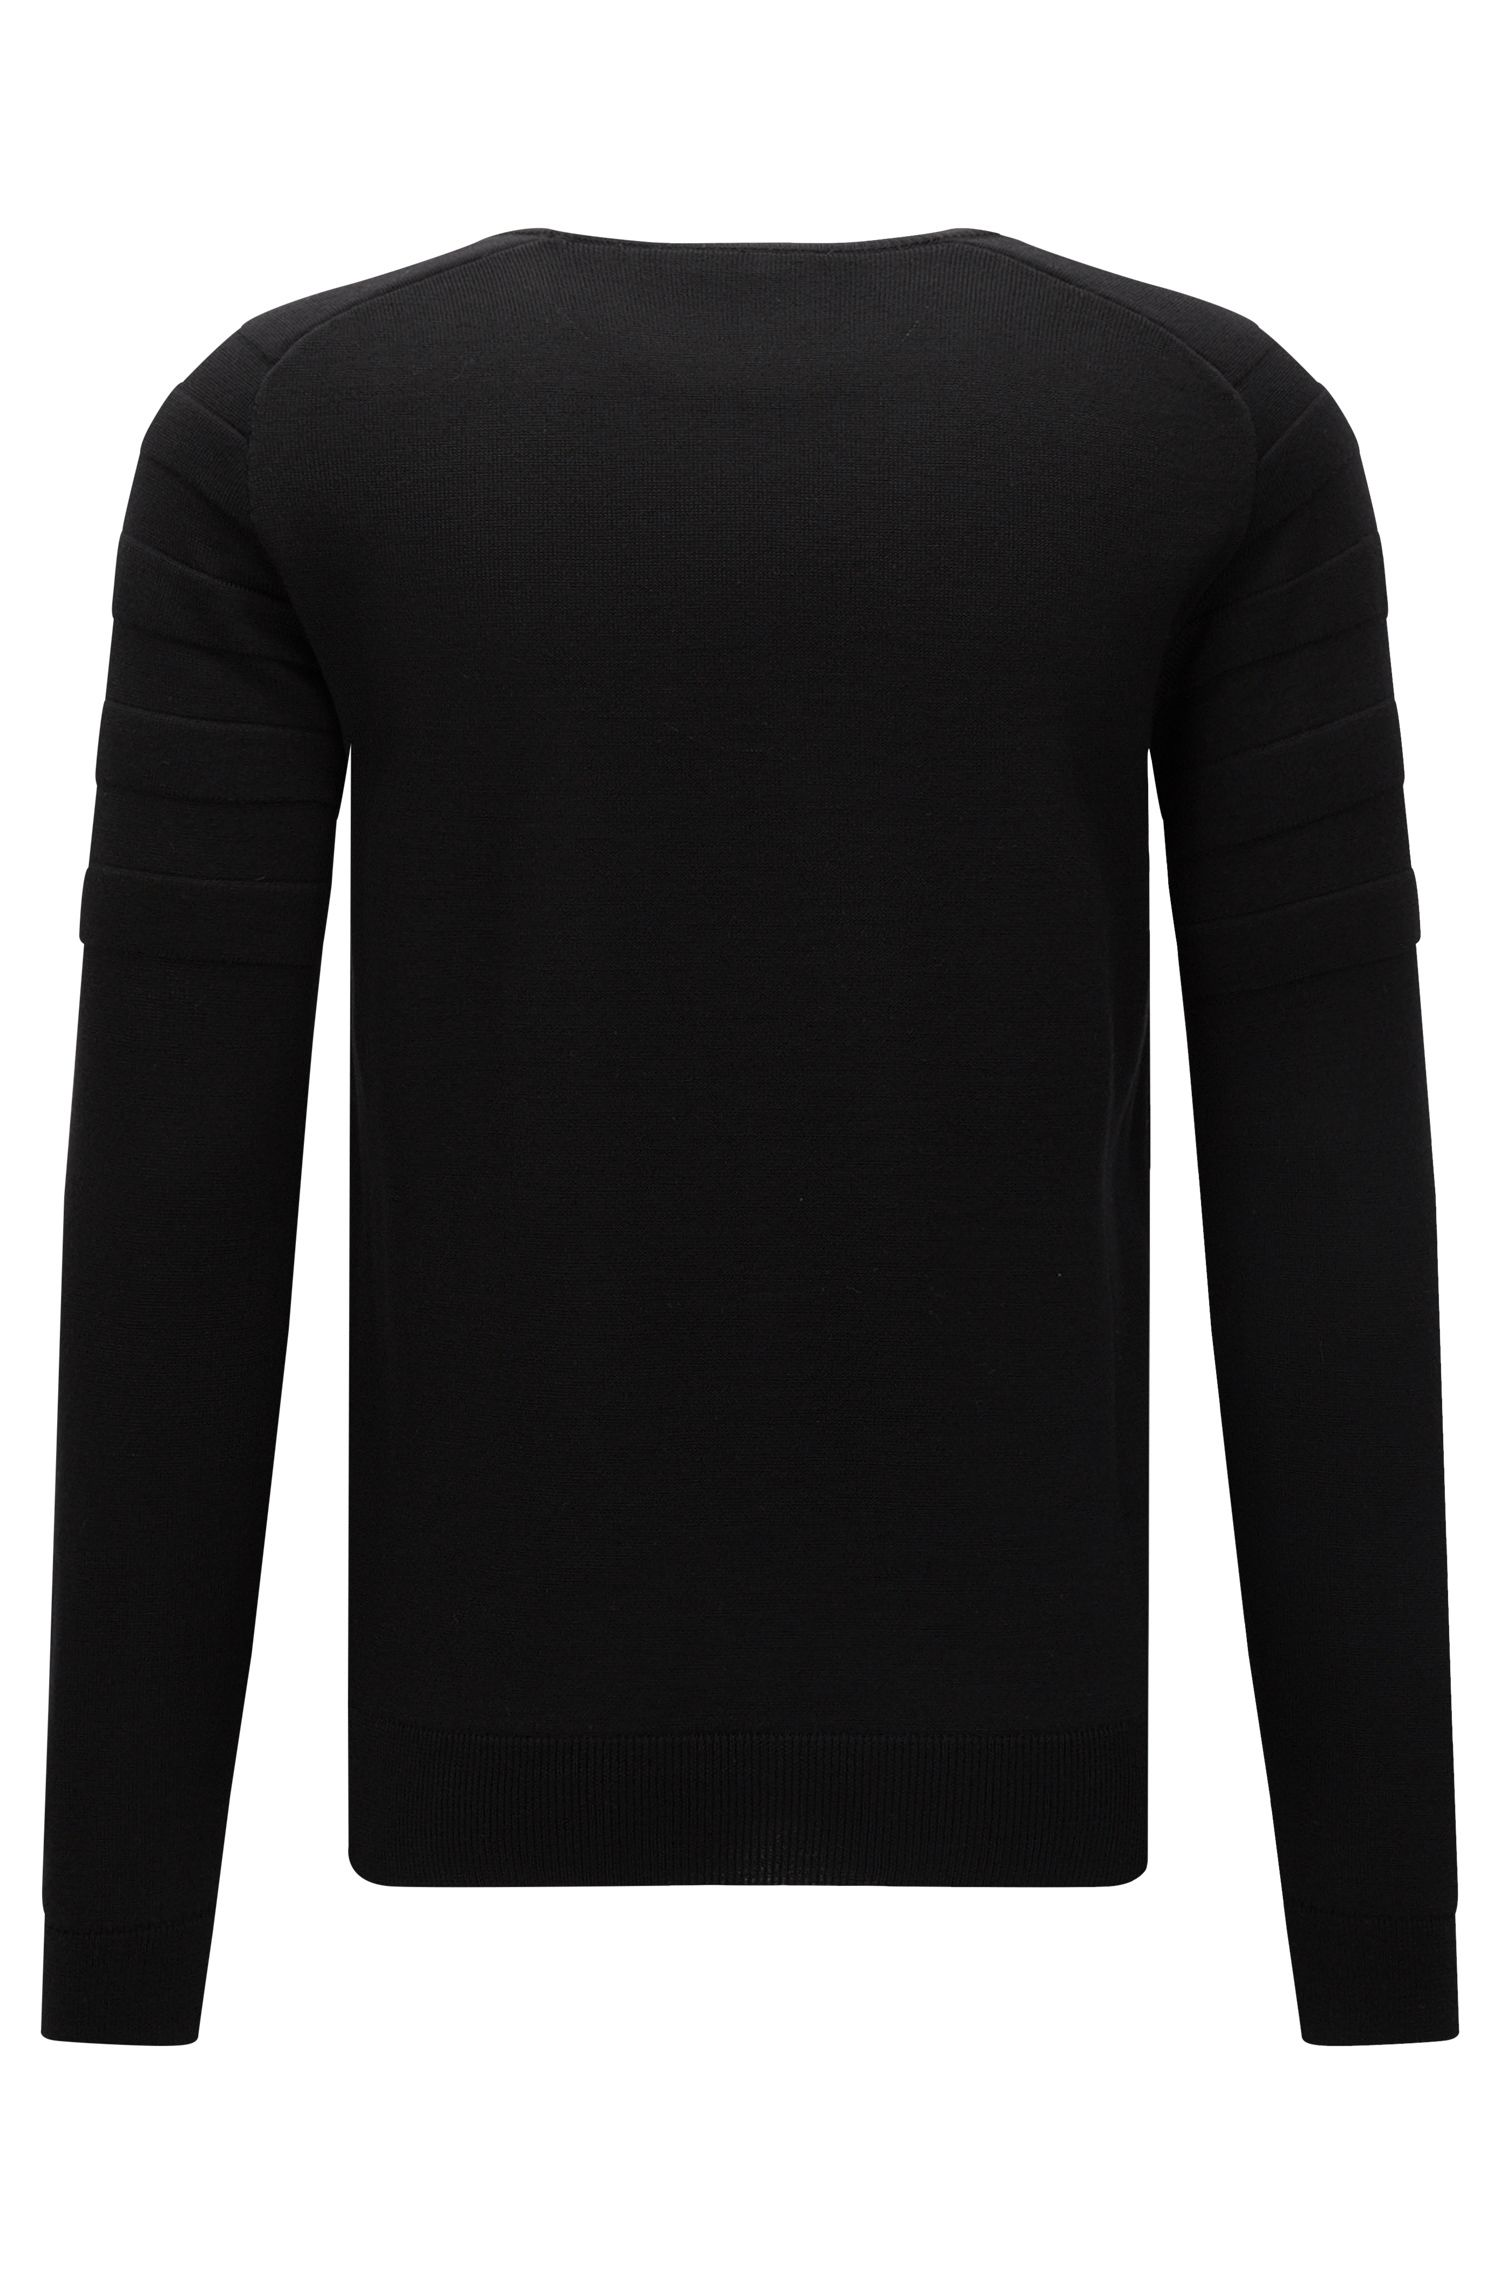 Biker-inspired sweater in virgin Merino wool